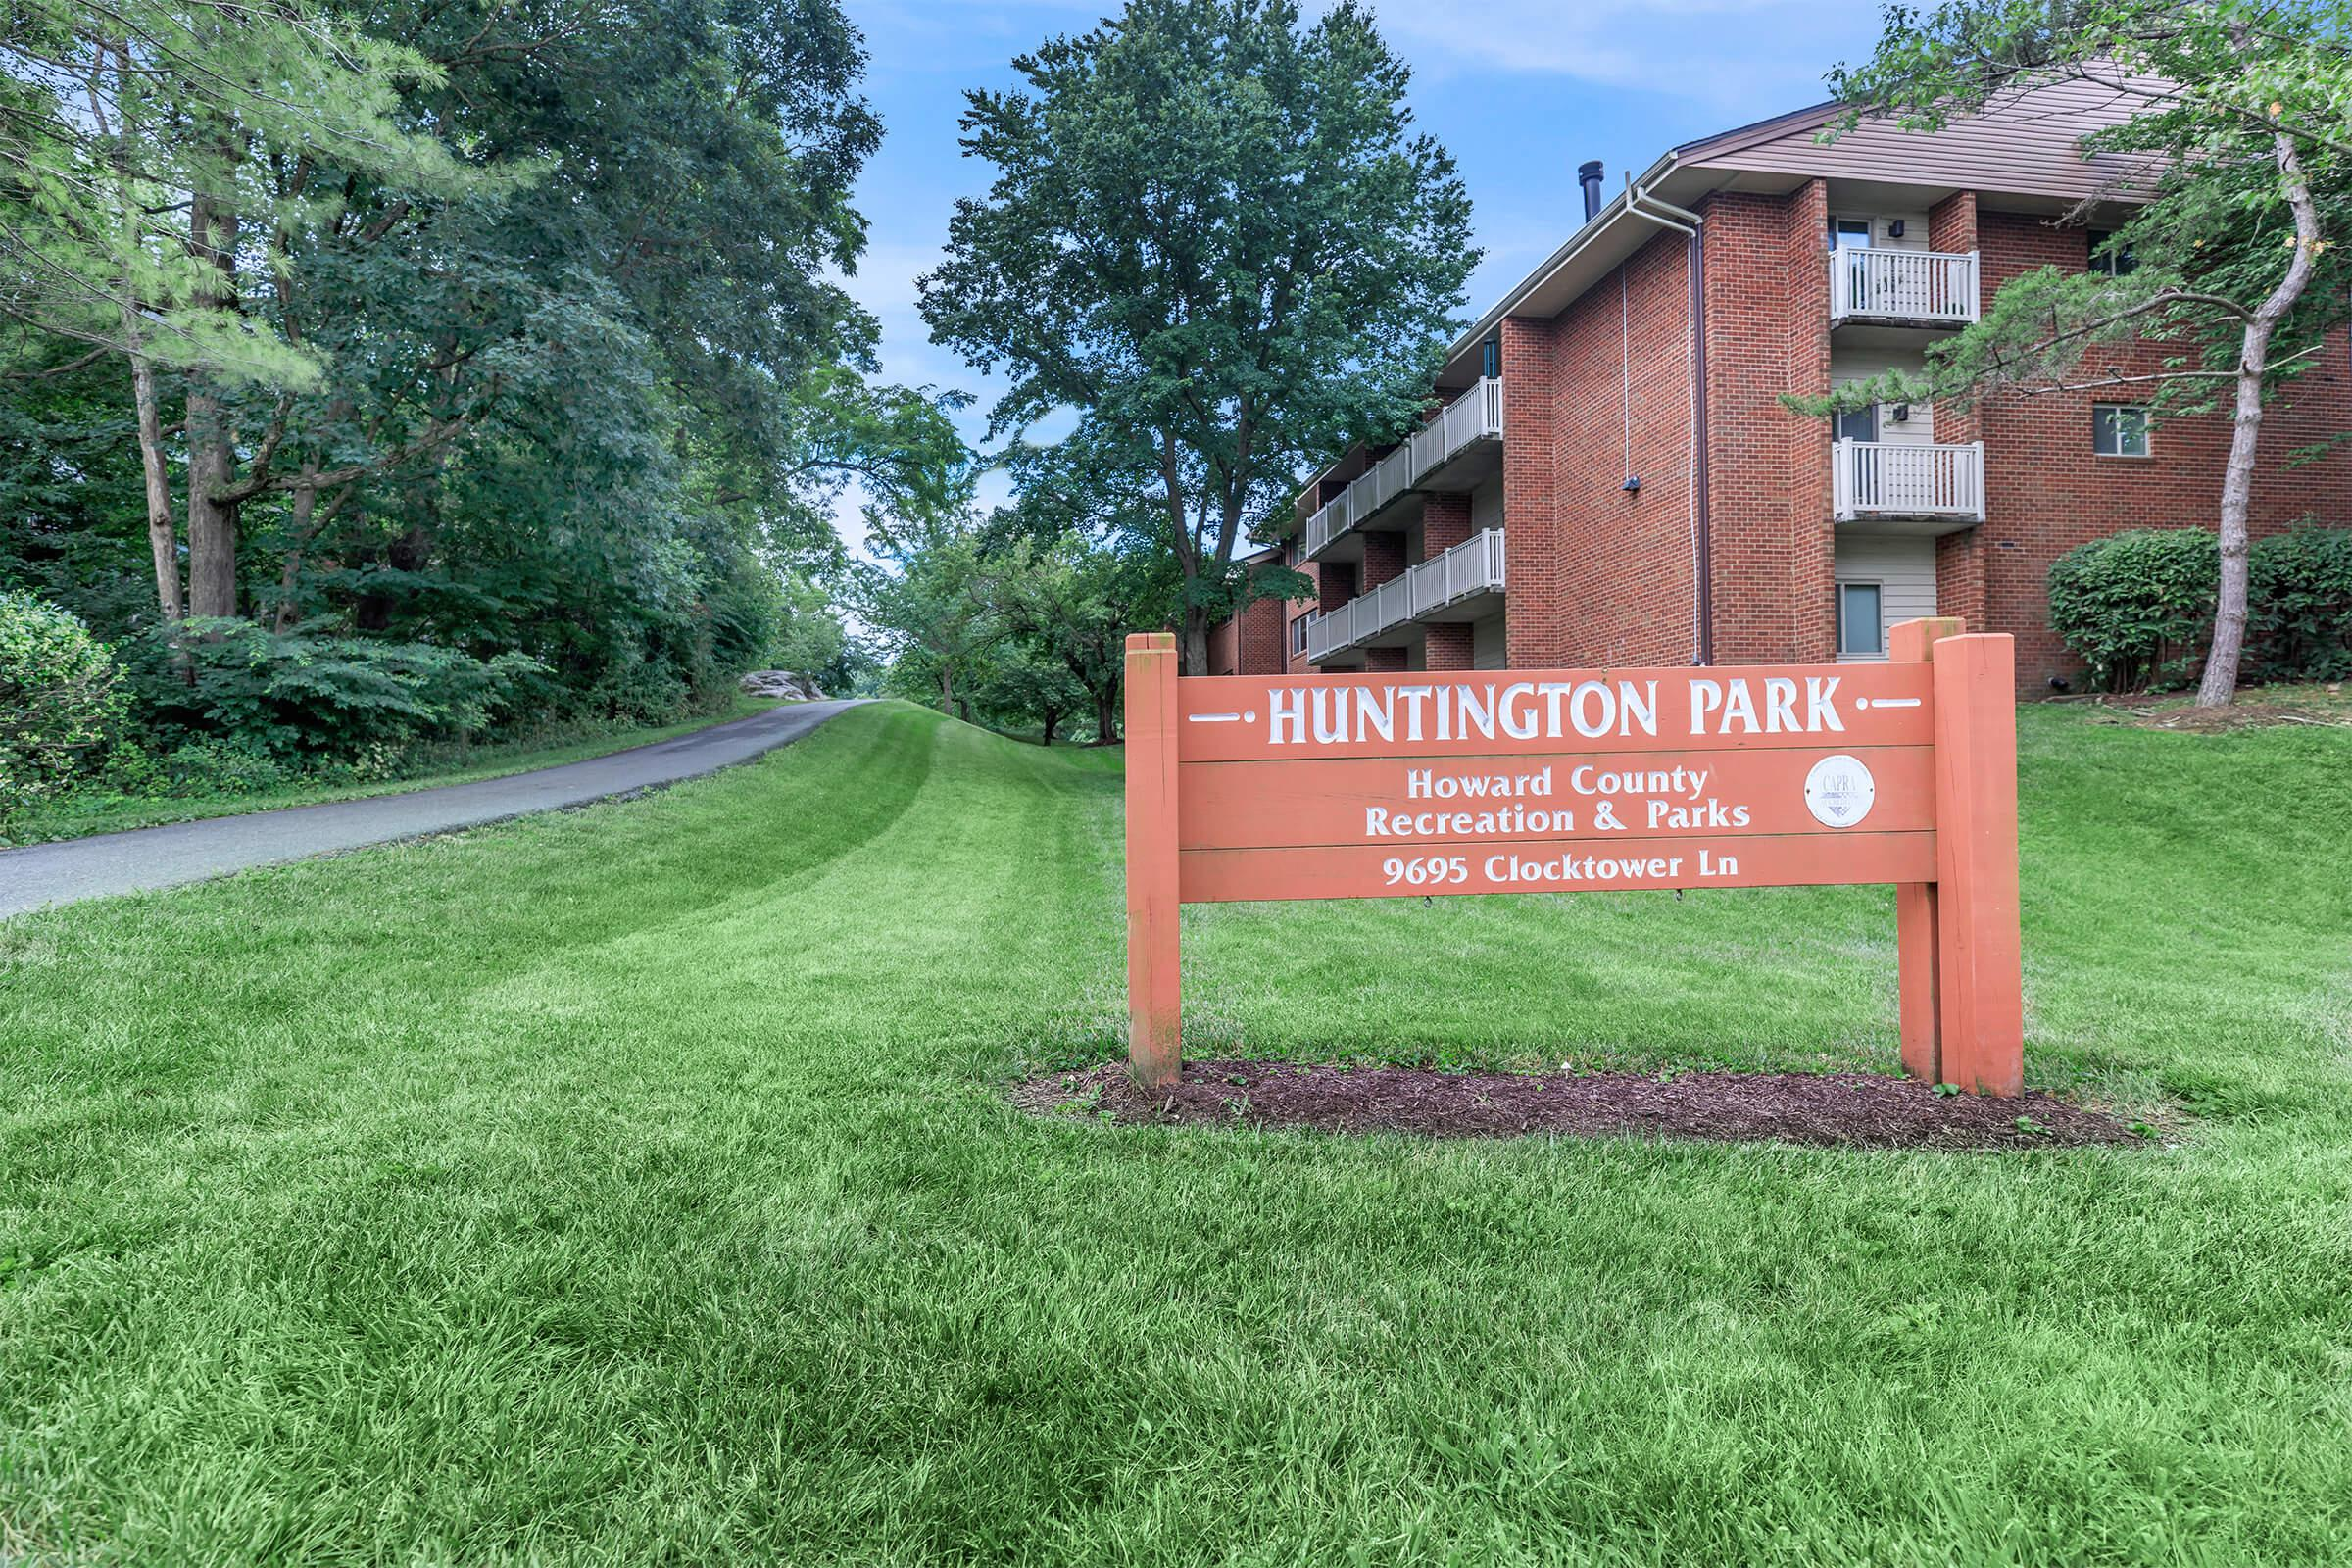 Landscaping at Huntington Square Apartments in Columbia, MD